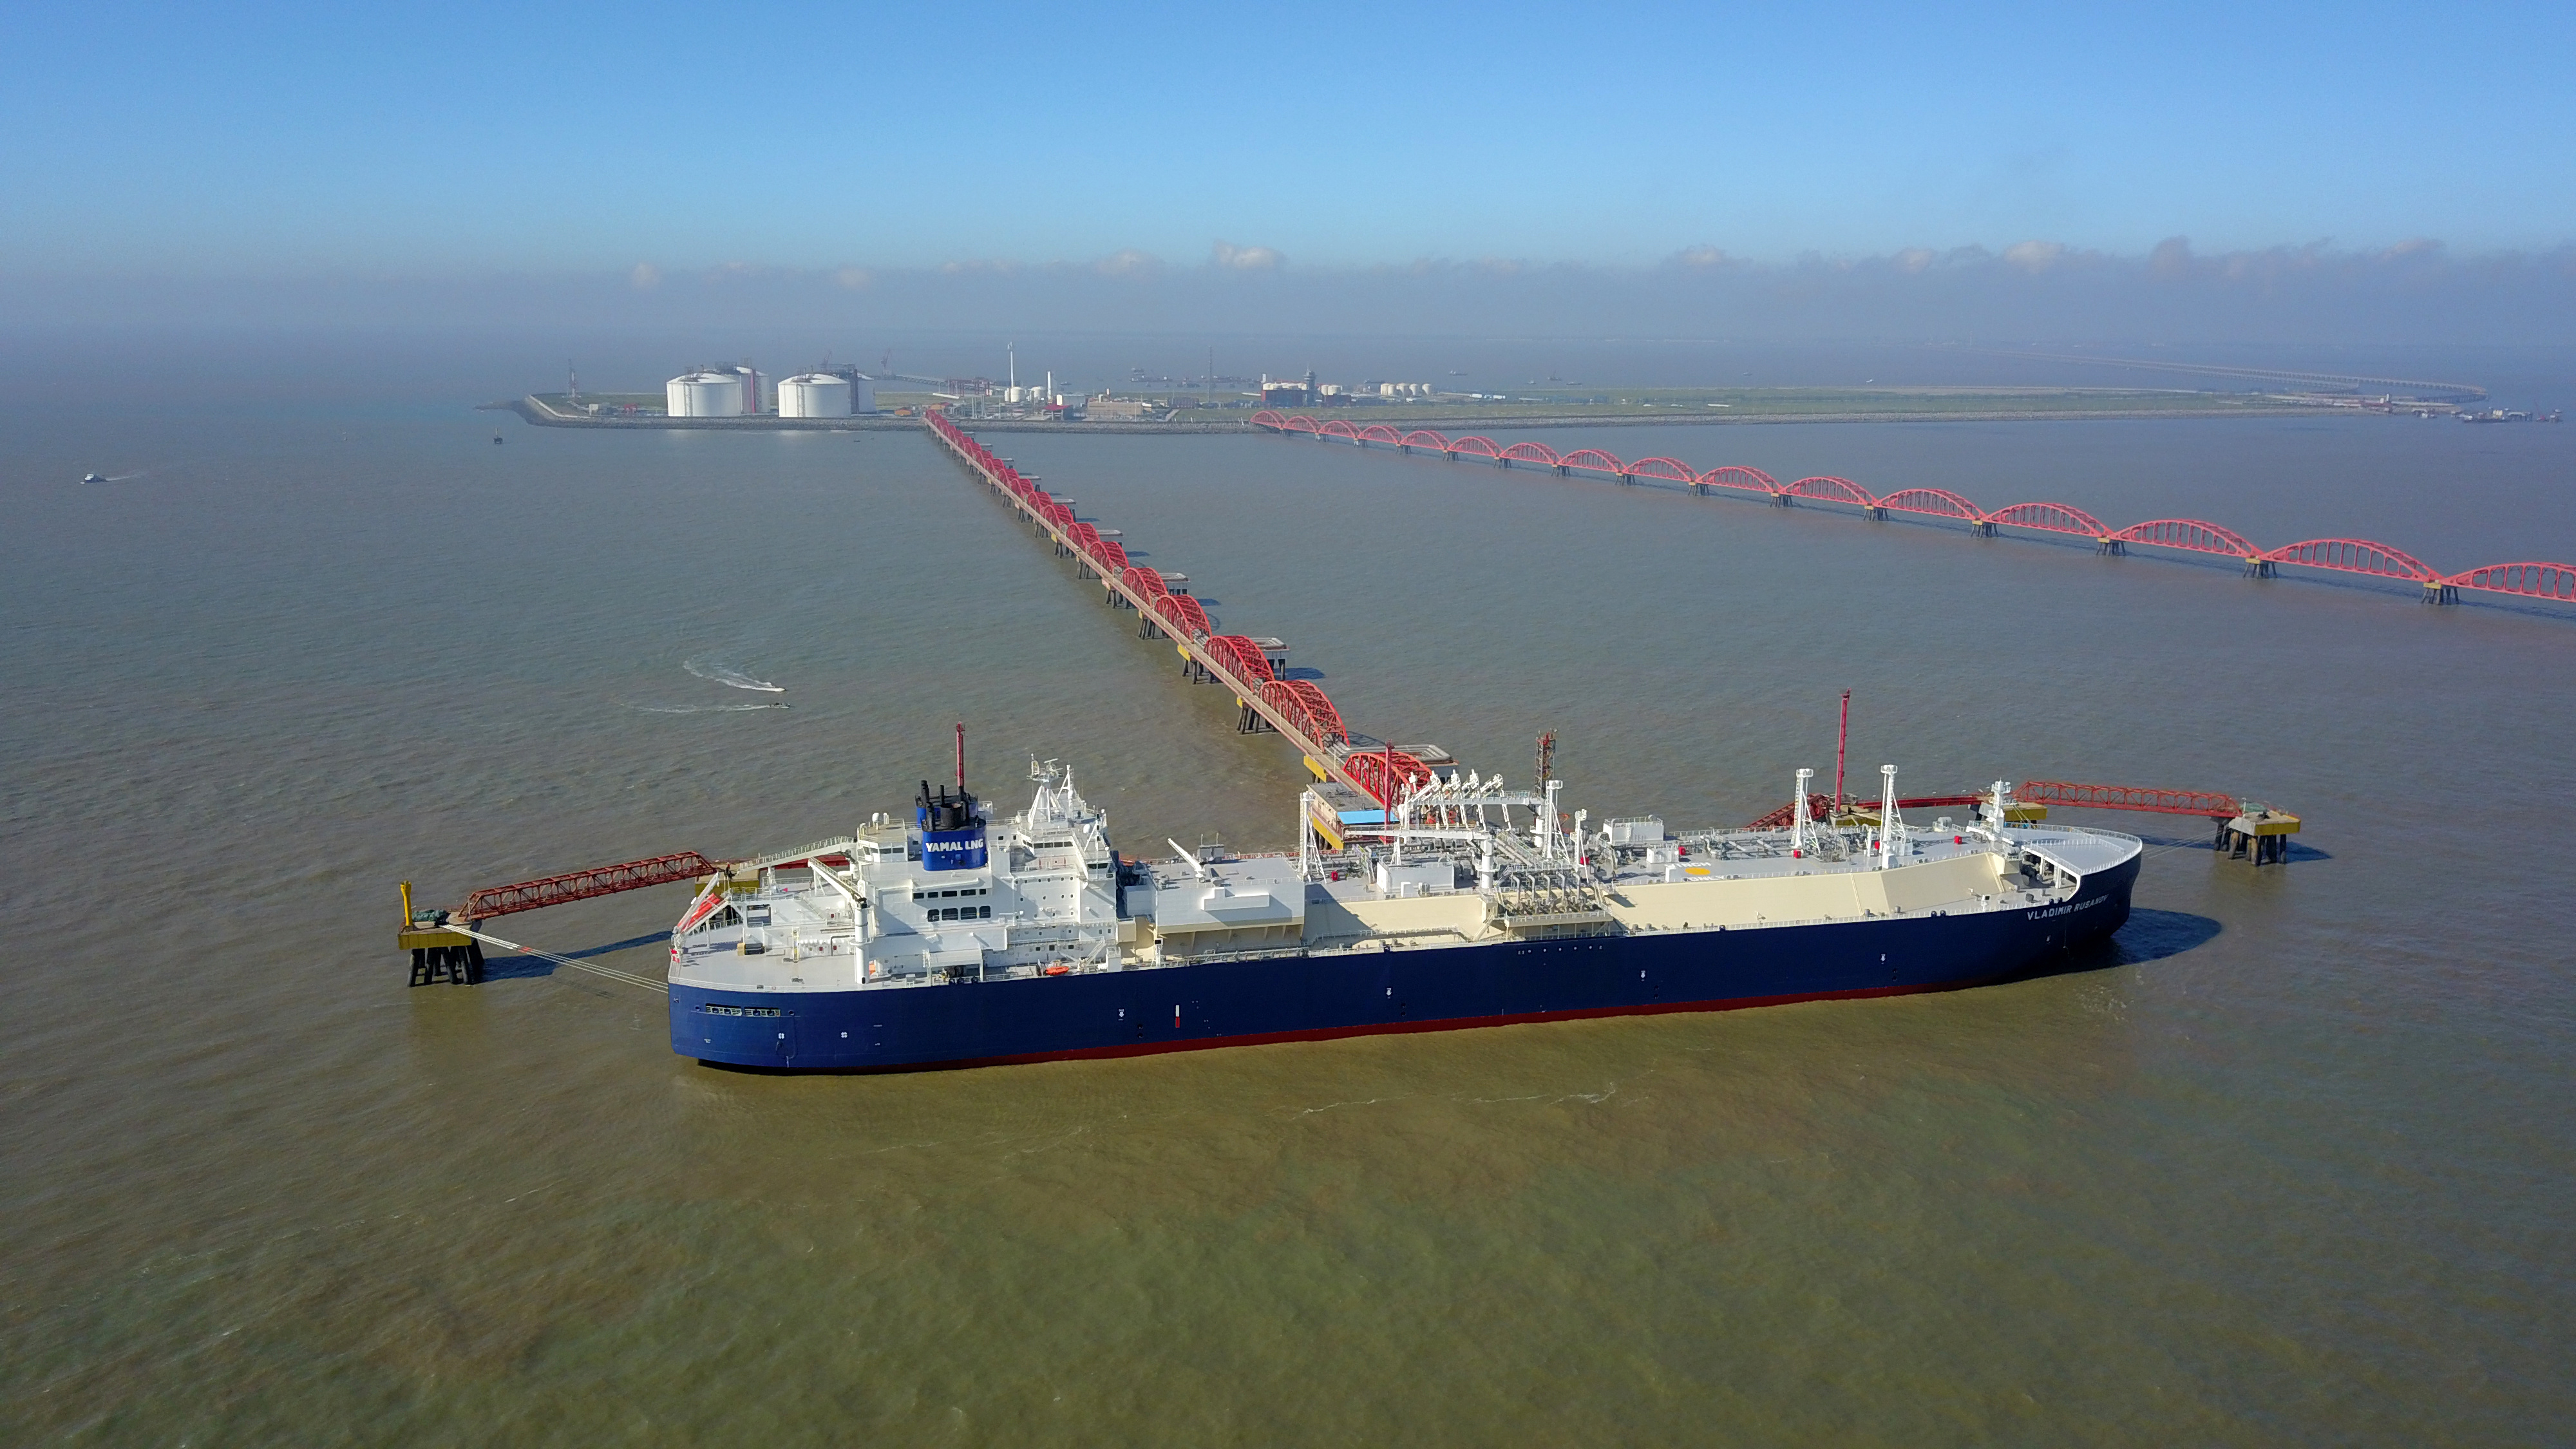 A vessel carrying liquefied natural gas (LNG) cargo from Russia's Yamal LNG project, is seen at Rudong LNG Terminal in Nantong, Jiangsu province, China July 19, 2018.  China Daily via REUTERS/File Photo